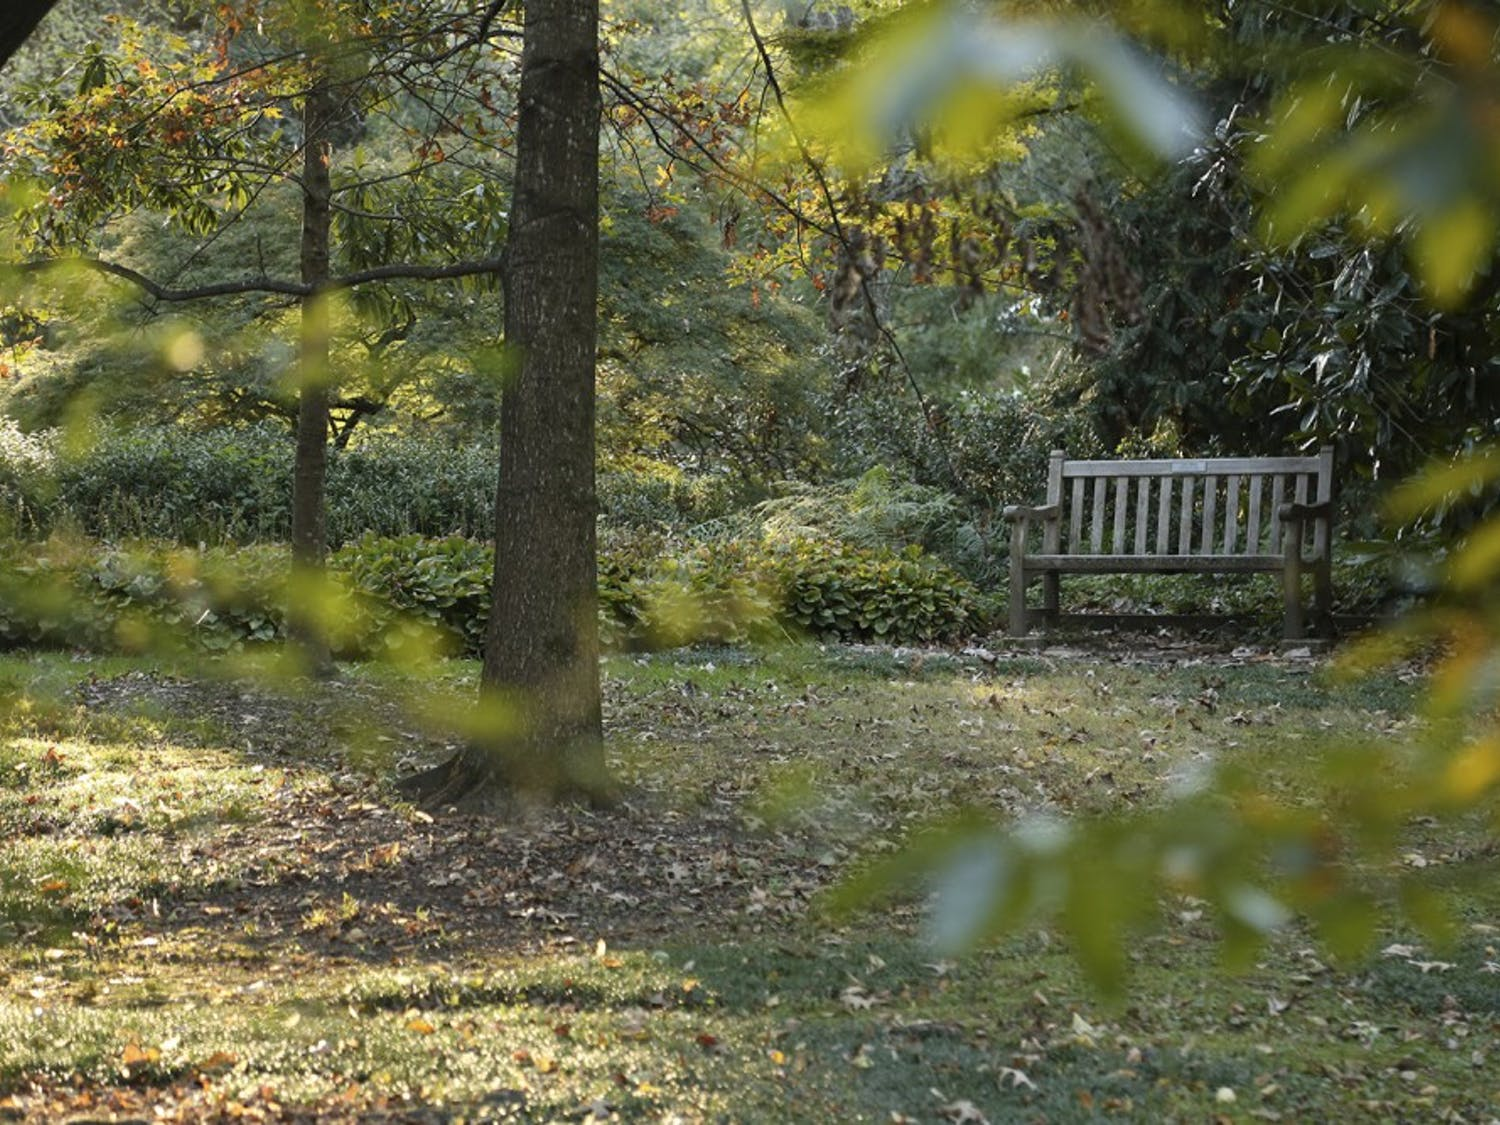 Coker Arboretum is known for its beautiful foliage and peaceful spots to rest.